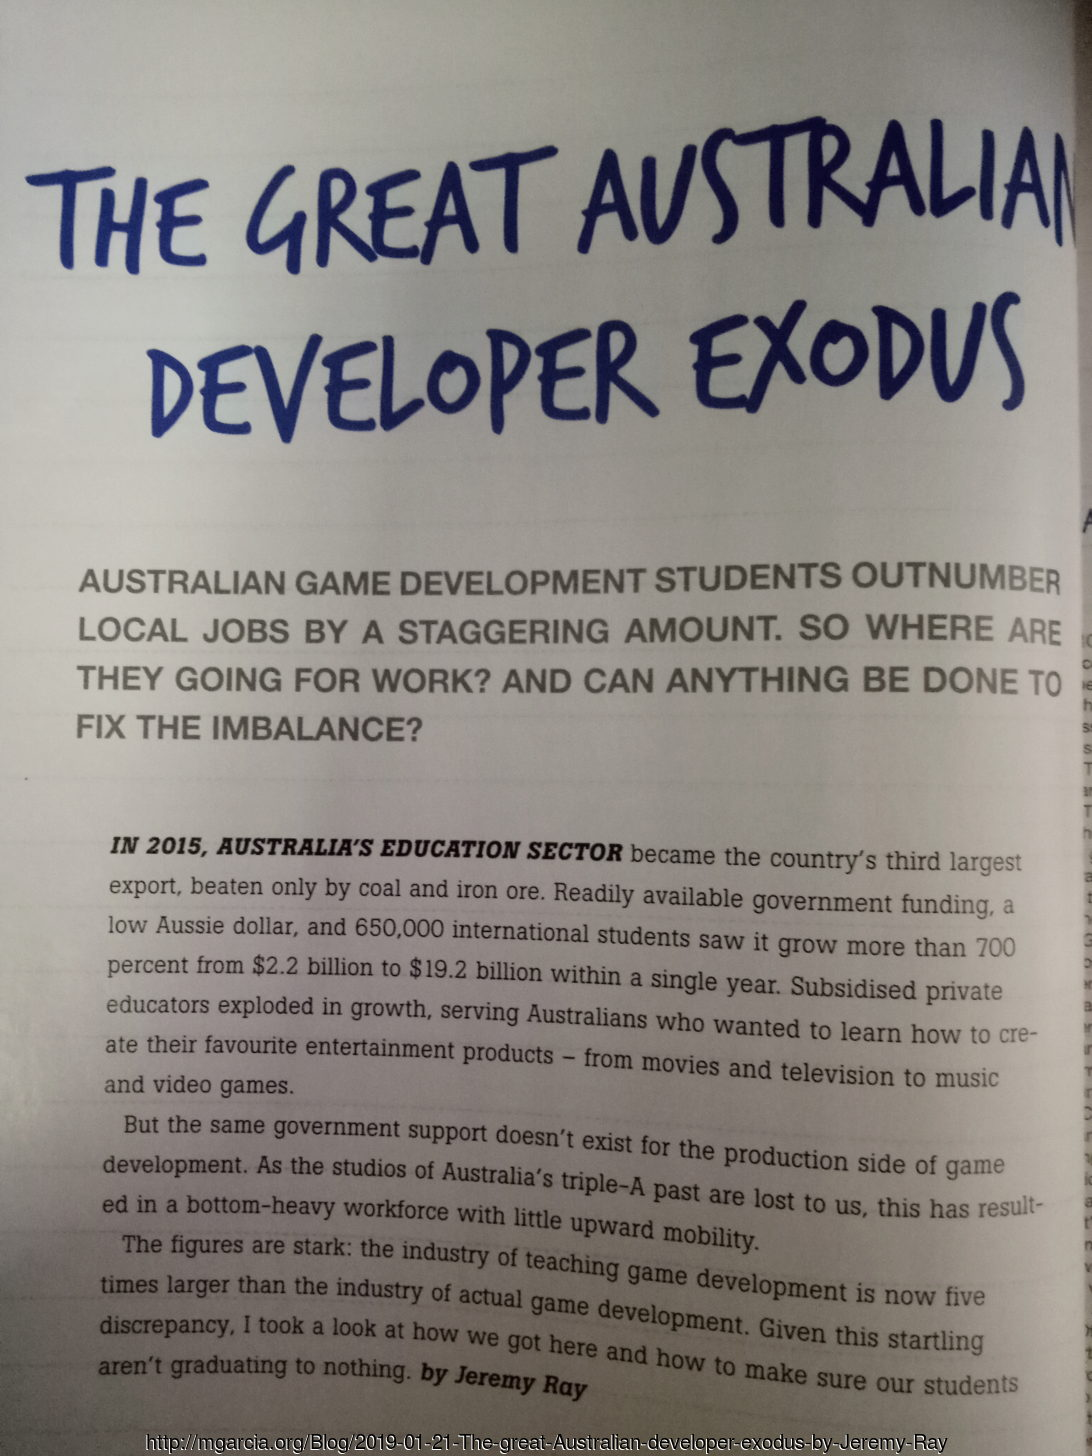 Image: The great Australian developer exodus by Jeremy Ray